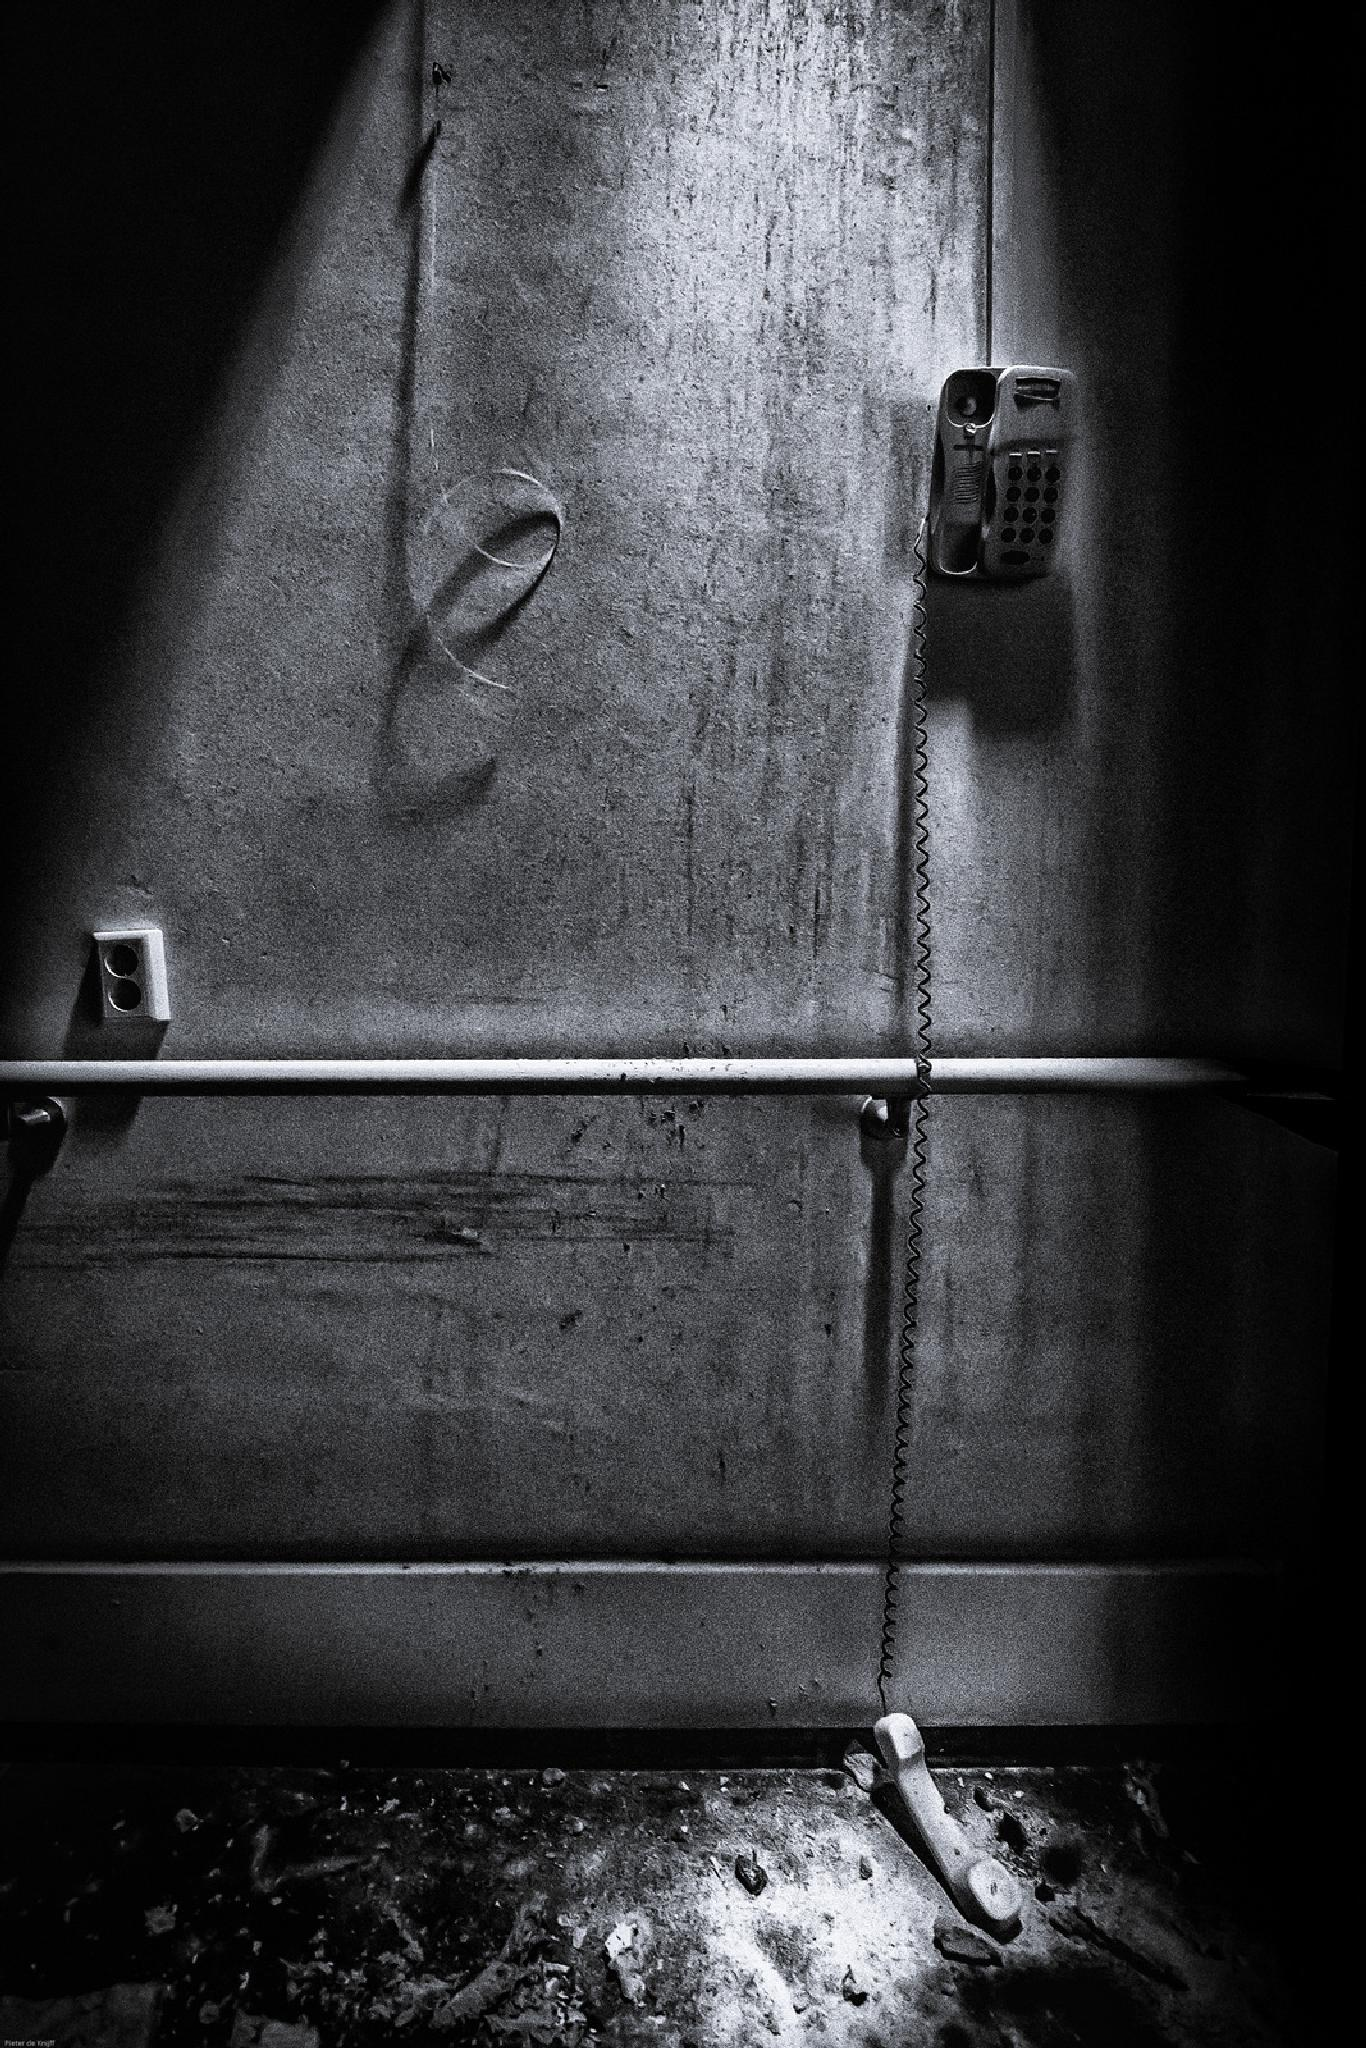 No Answer by Pieter de Knijff Photography